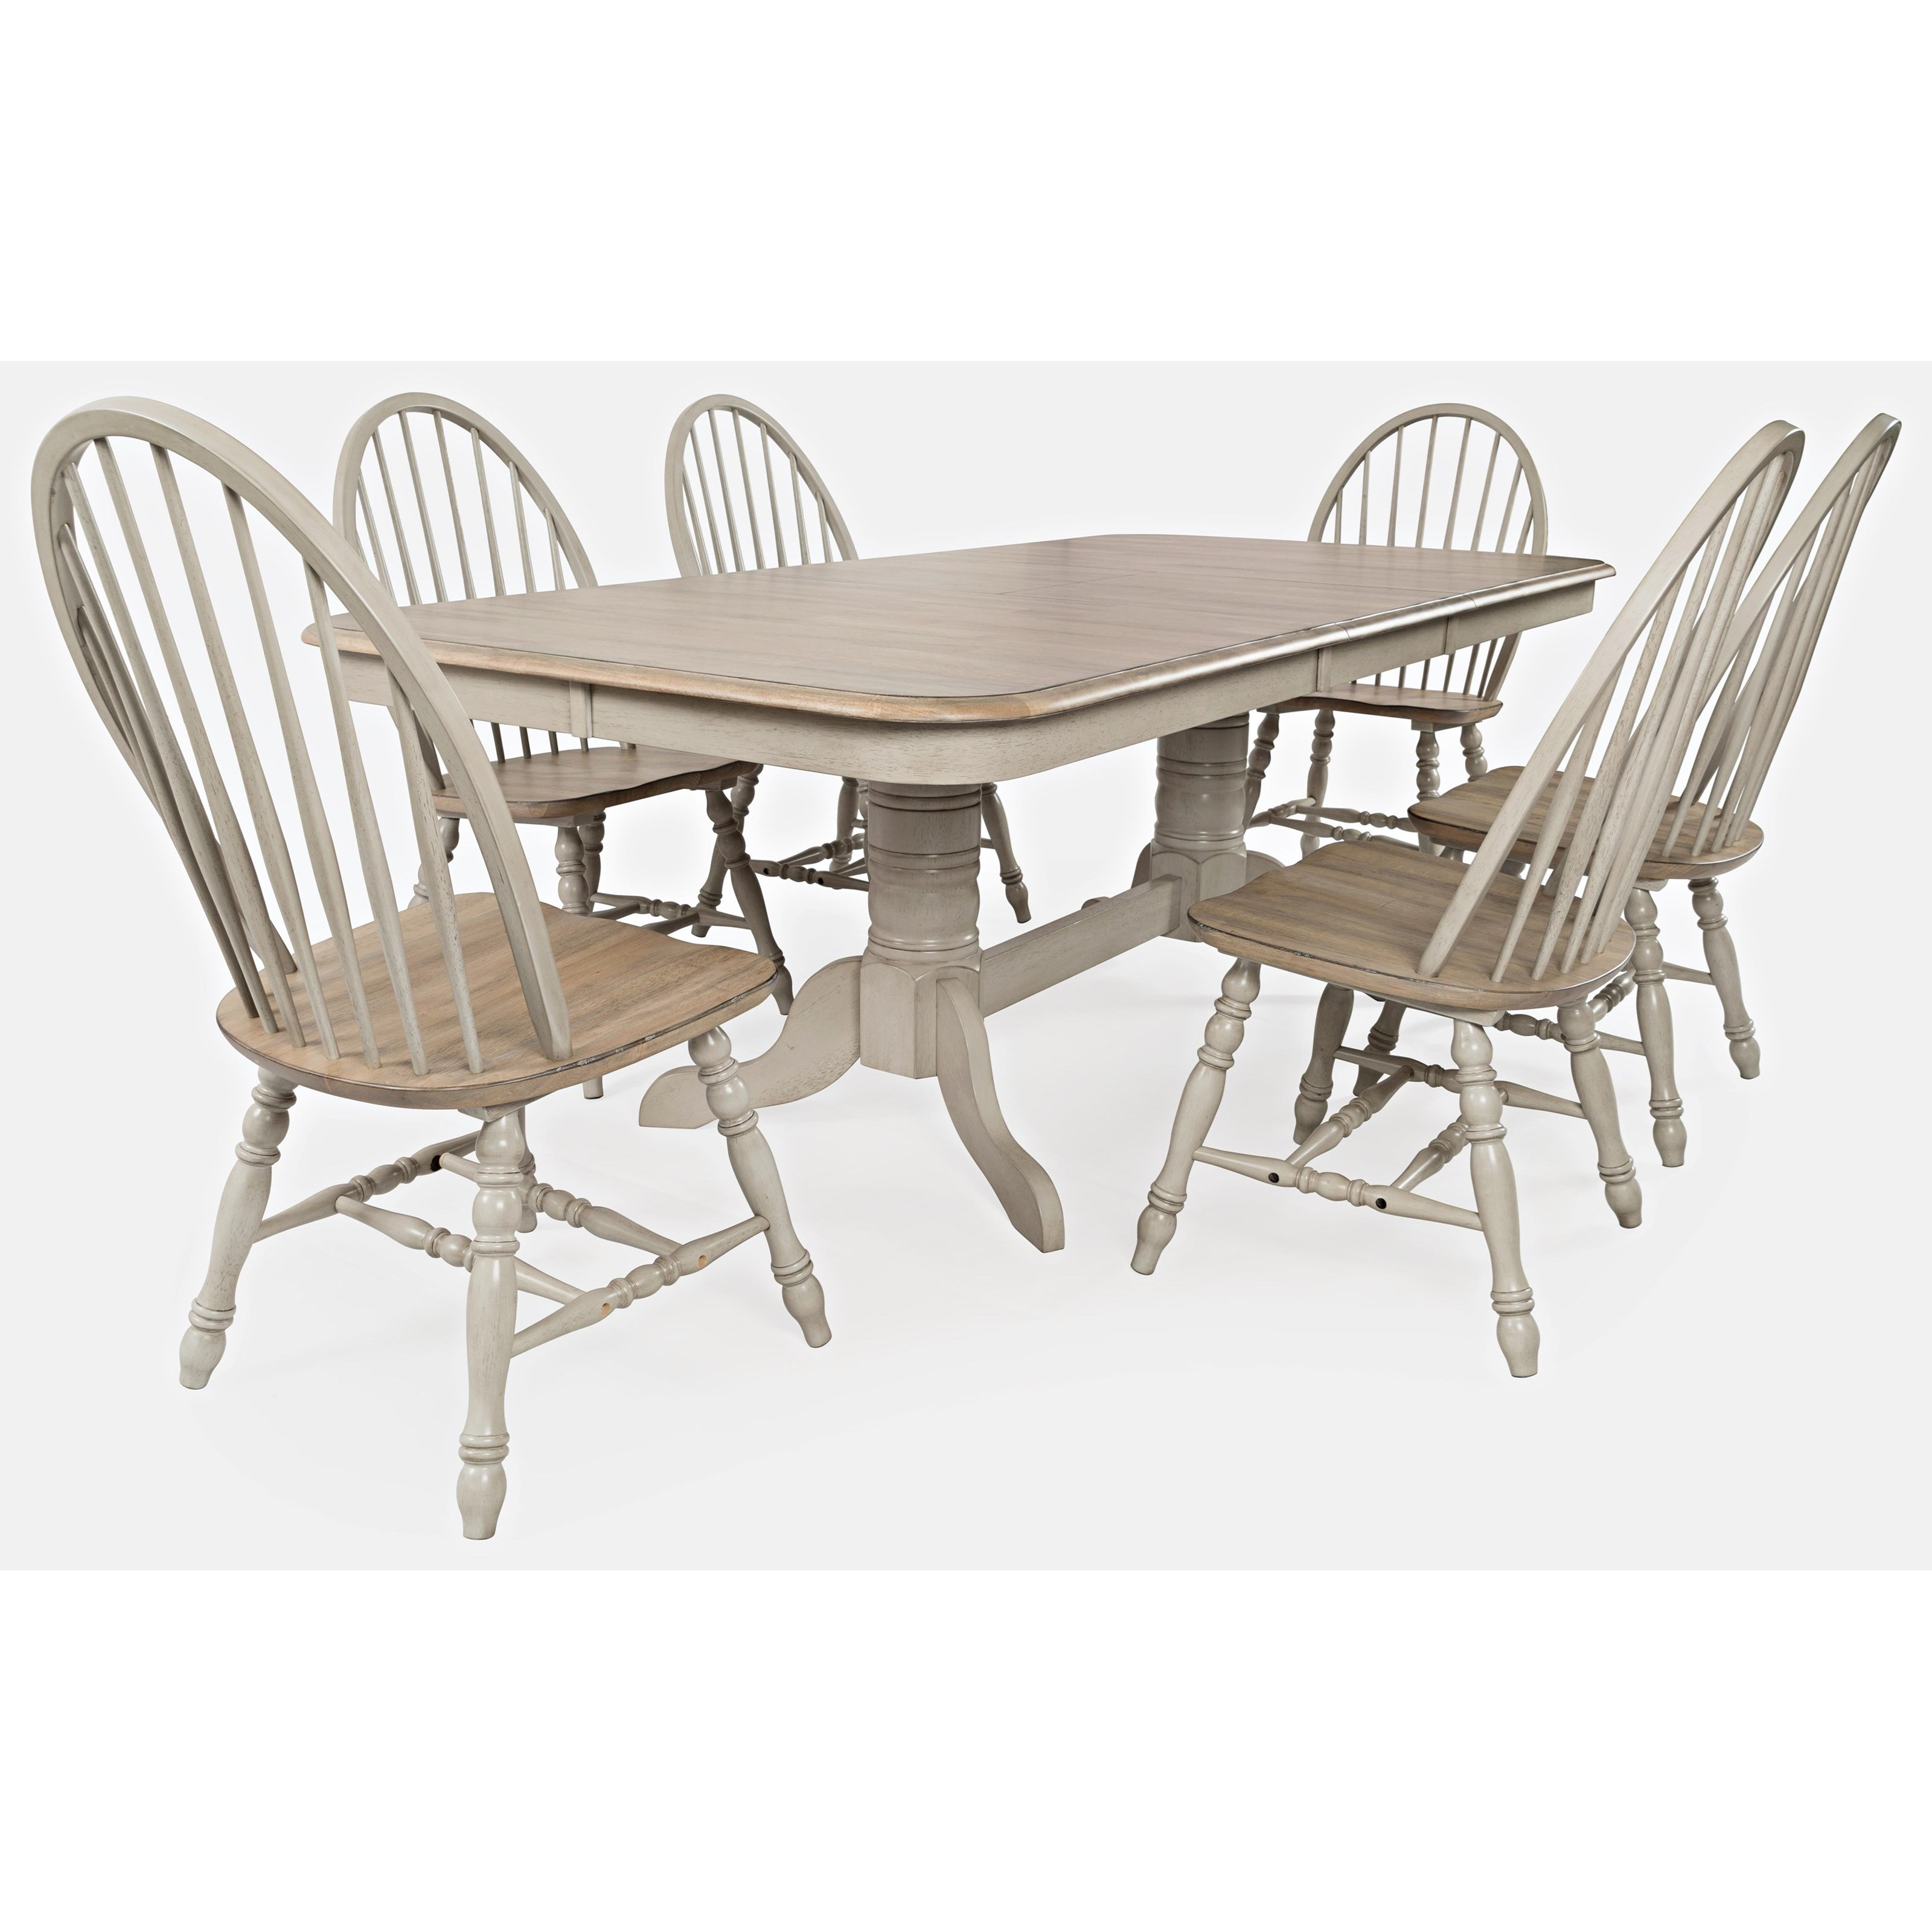 Westport 7-Piece Dining Table and Chair Set by Jofran at Jofran